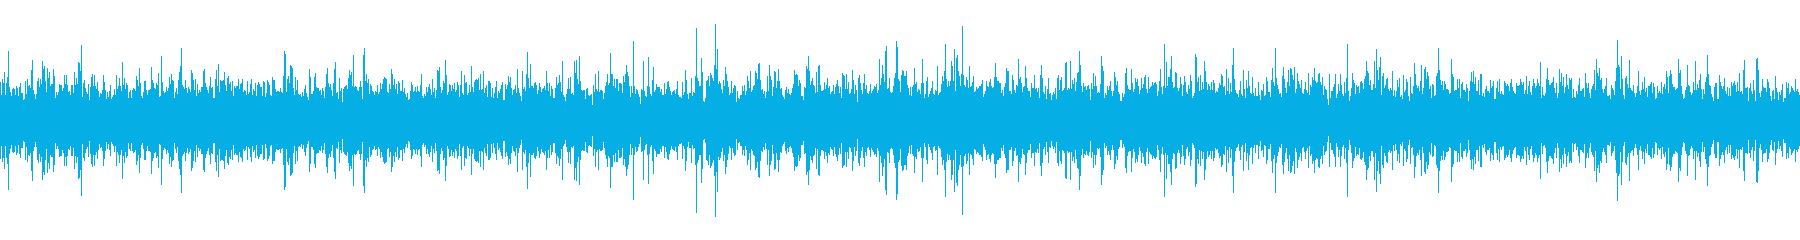 River murmuring (brook) A (loop playback possible)'s reproduced waveform